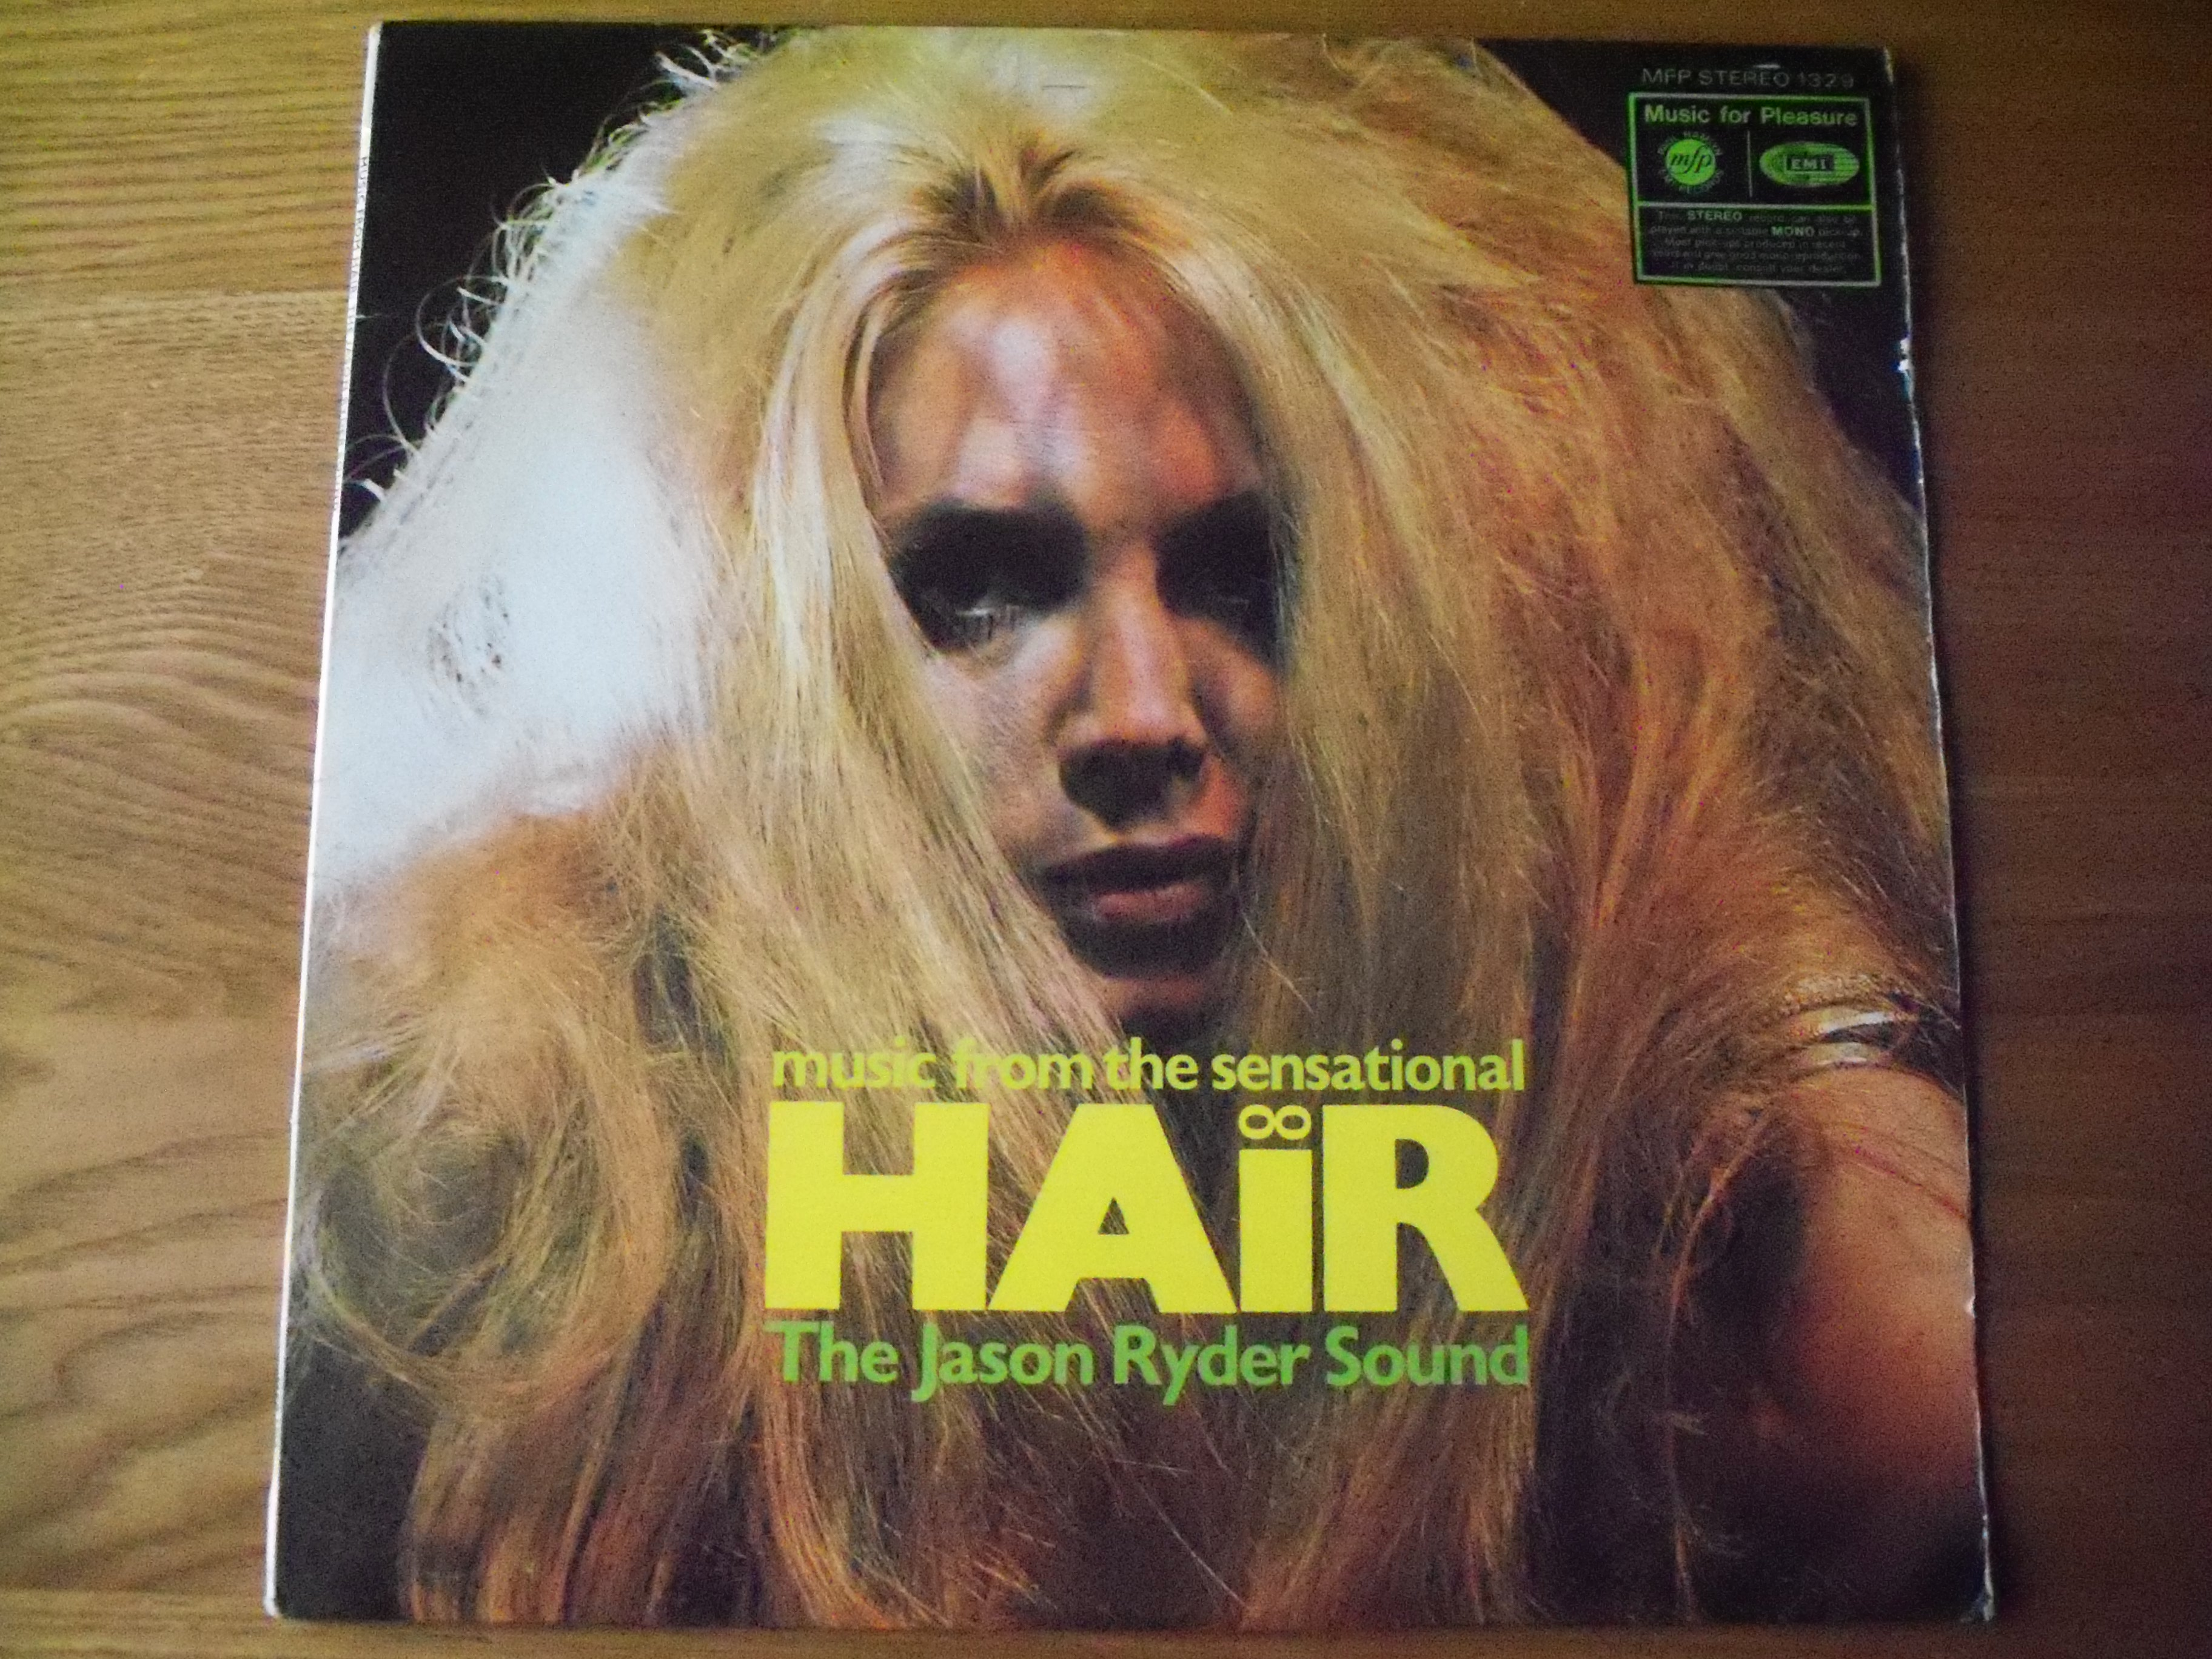 LP 288: The Jason Ryder Sound – Music from Hair (Music for